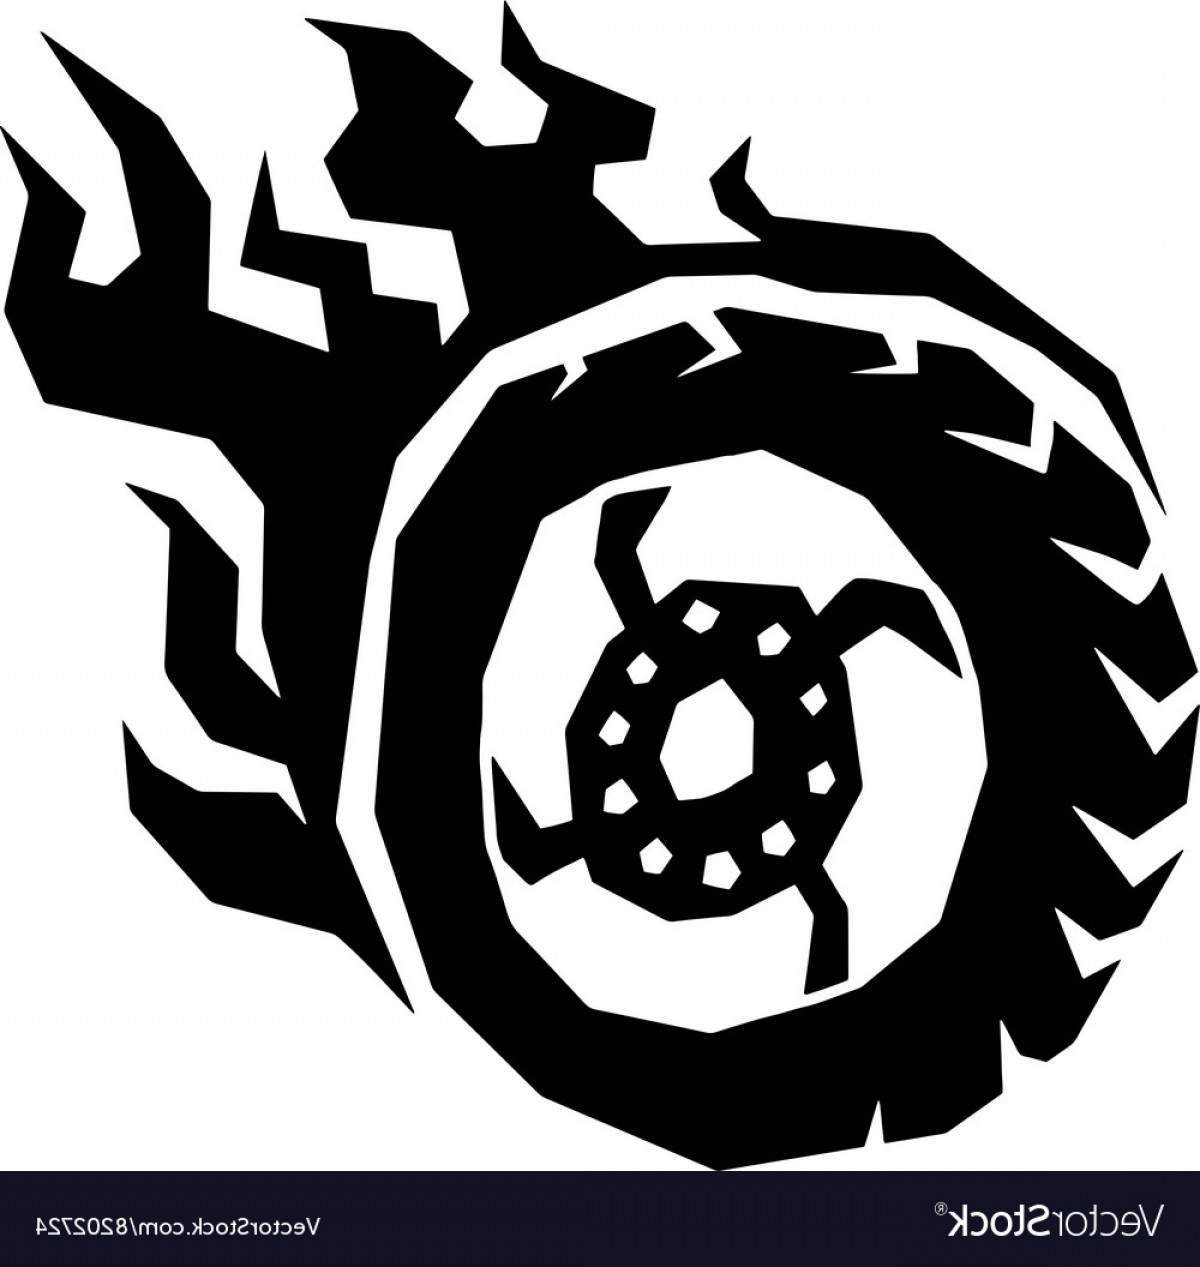 Hot Wheels Vector Art: Car And Motorcycle Fire Wheel With Flame Vector